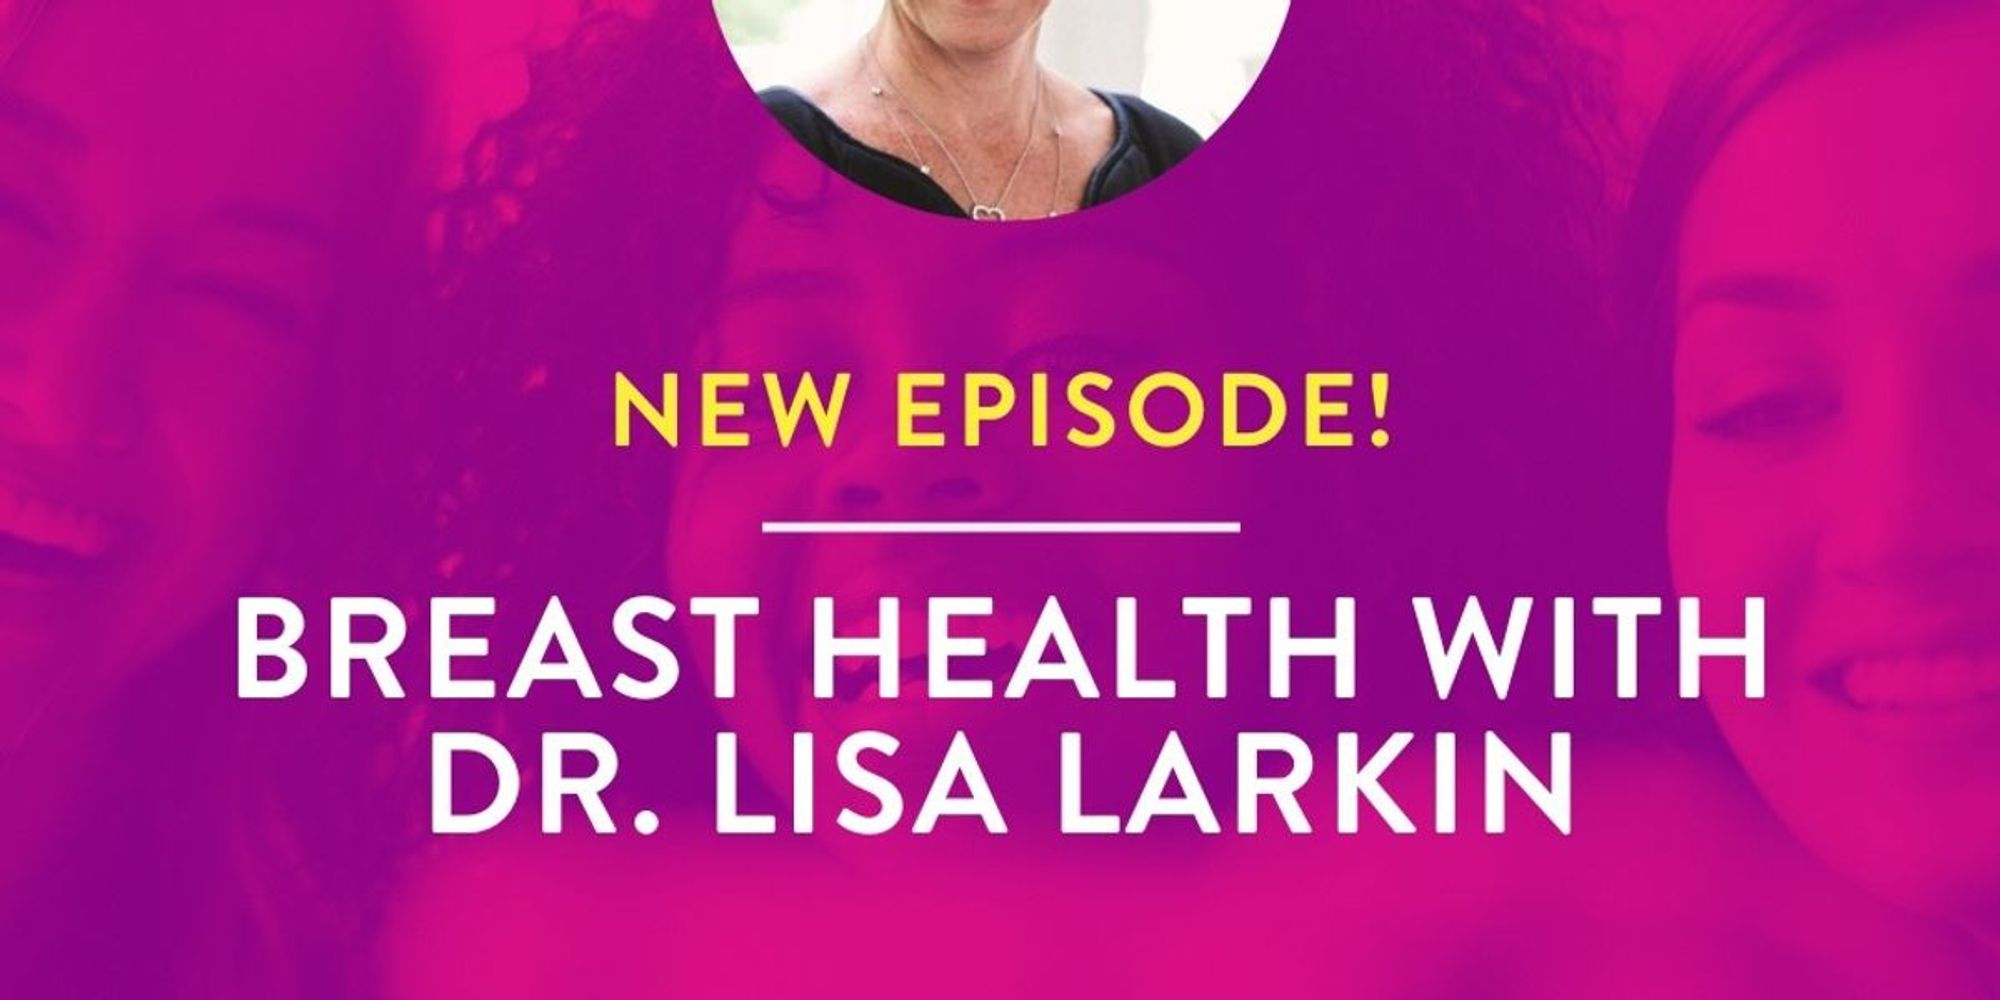 The Great Girlfriends™ Podcast with Dr. Lisa Larkin on Breast Health